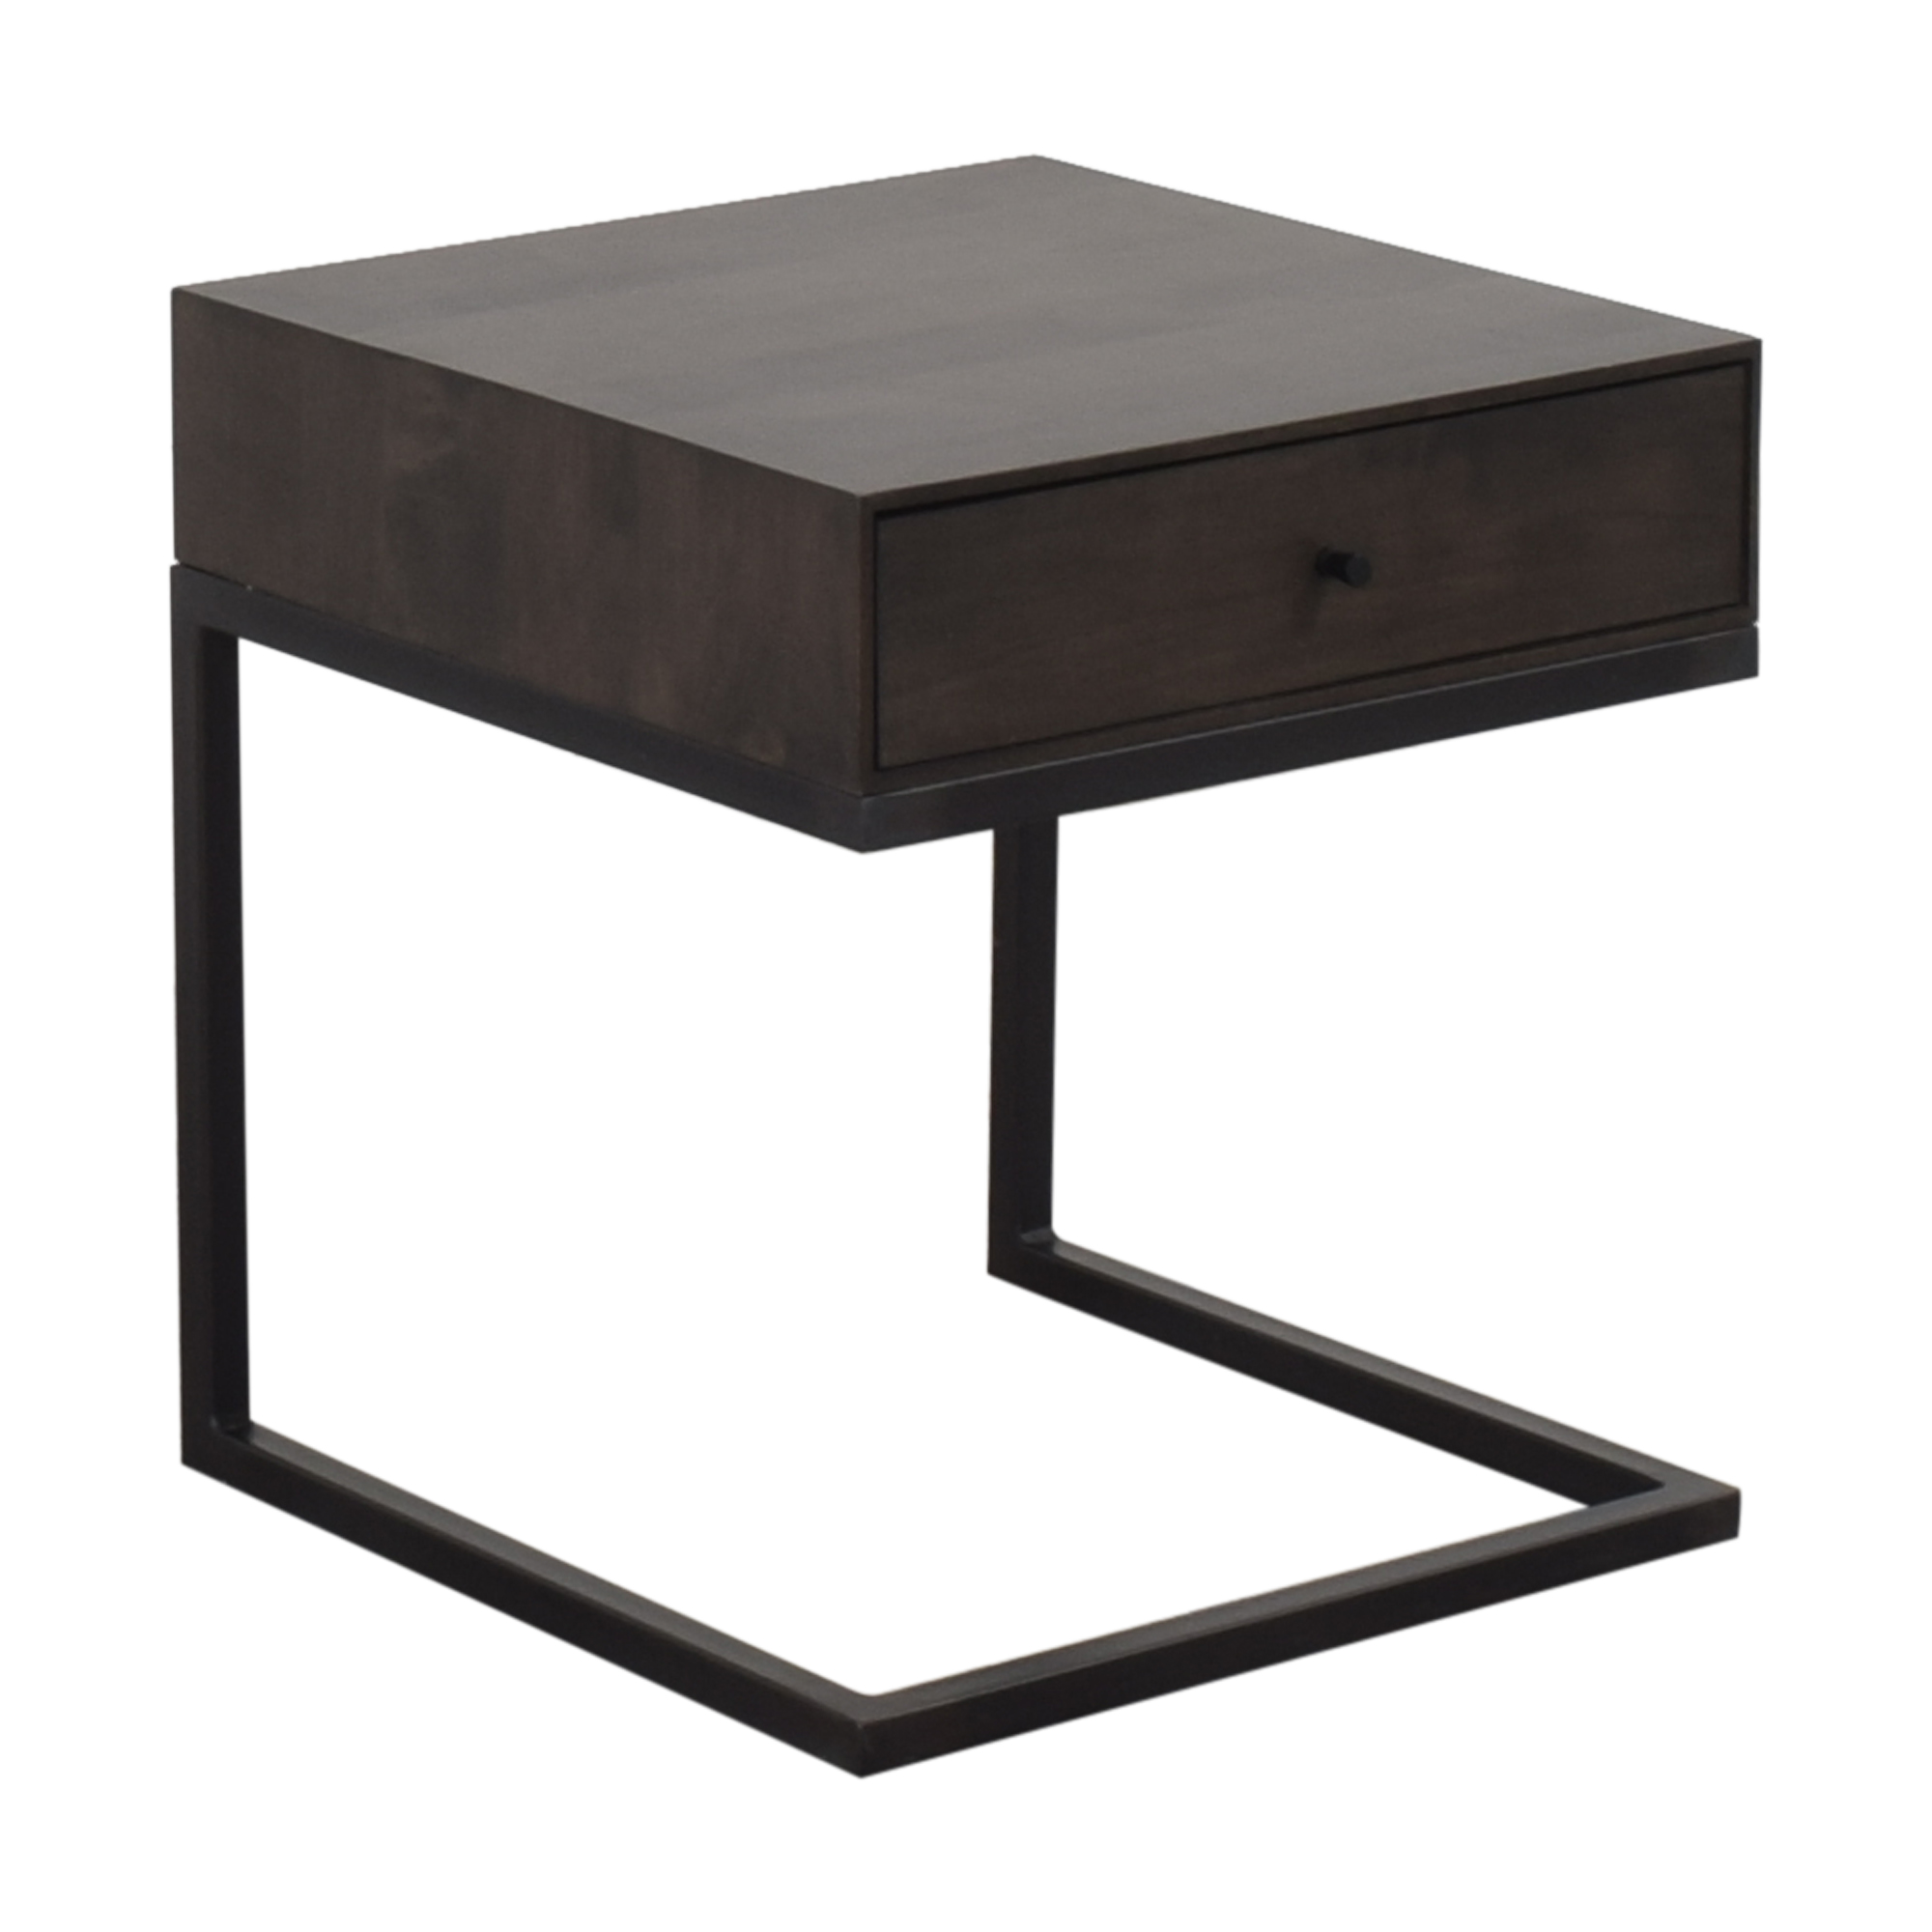 shop Room & Board Hudson One Drawer C-Table Nightstand Room & Board Tables